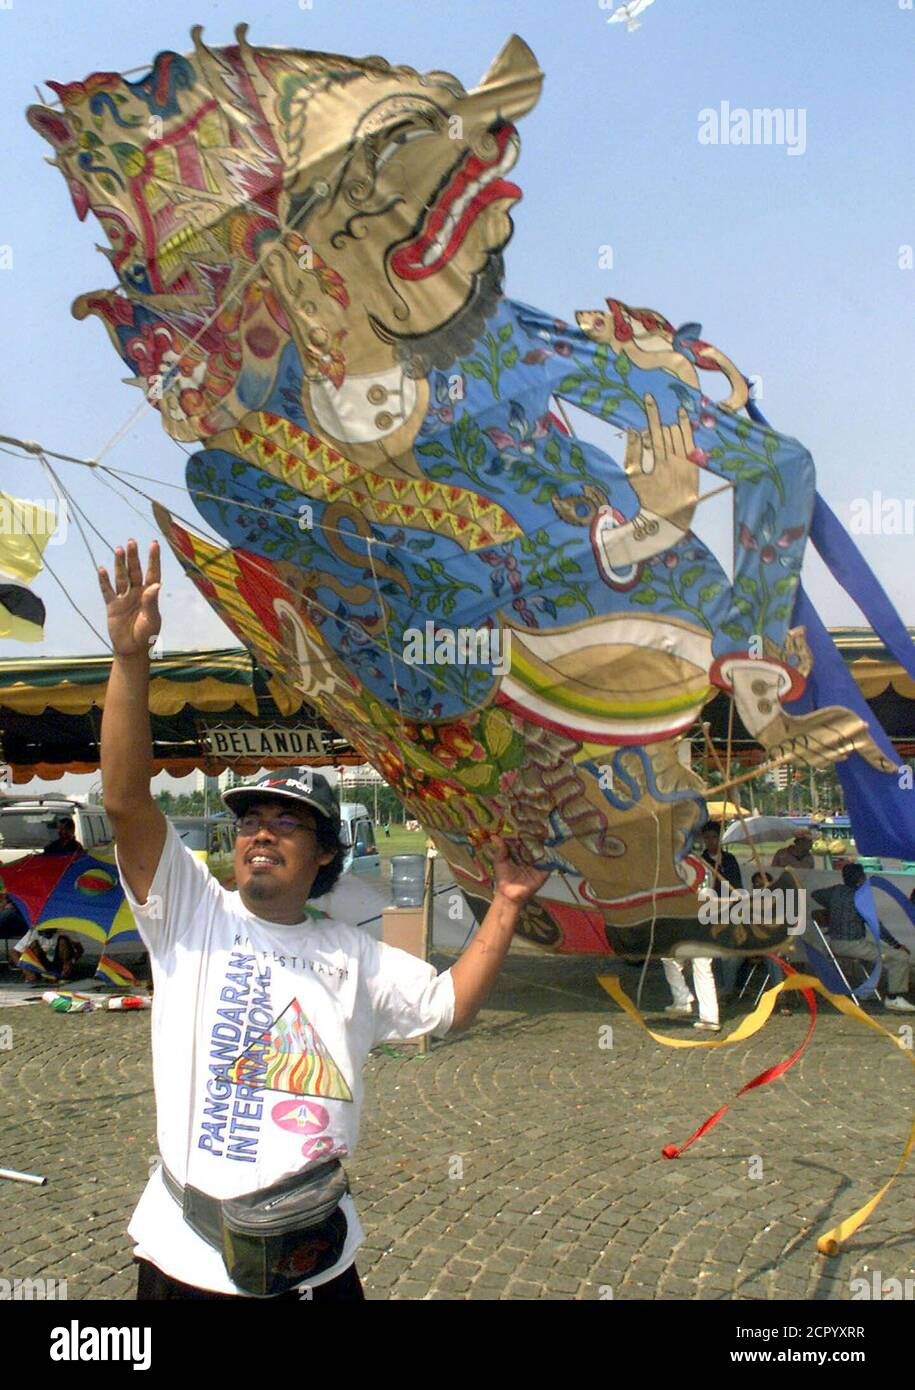 A contestant from central Java flies a kite which resembles a Indonesian shadow puppetc character at the International Kite Festival in Jakarta on July 7. Fourteen provinces in Indonesia and ten countries including Malaysia, Netherland and Japan, participated in the three day festival.  PRI/TS Stock Photo